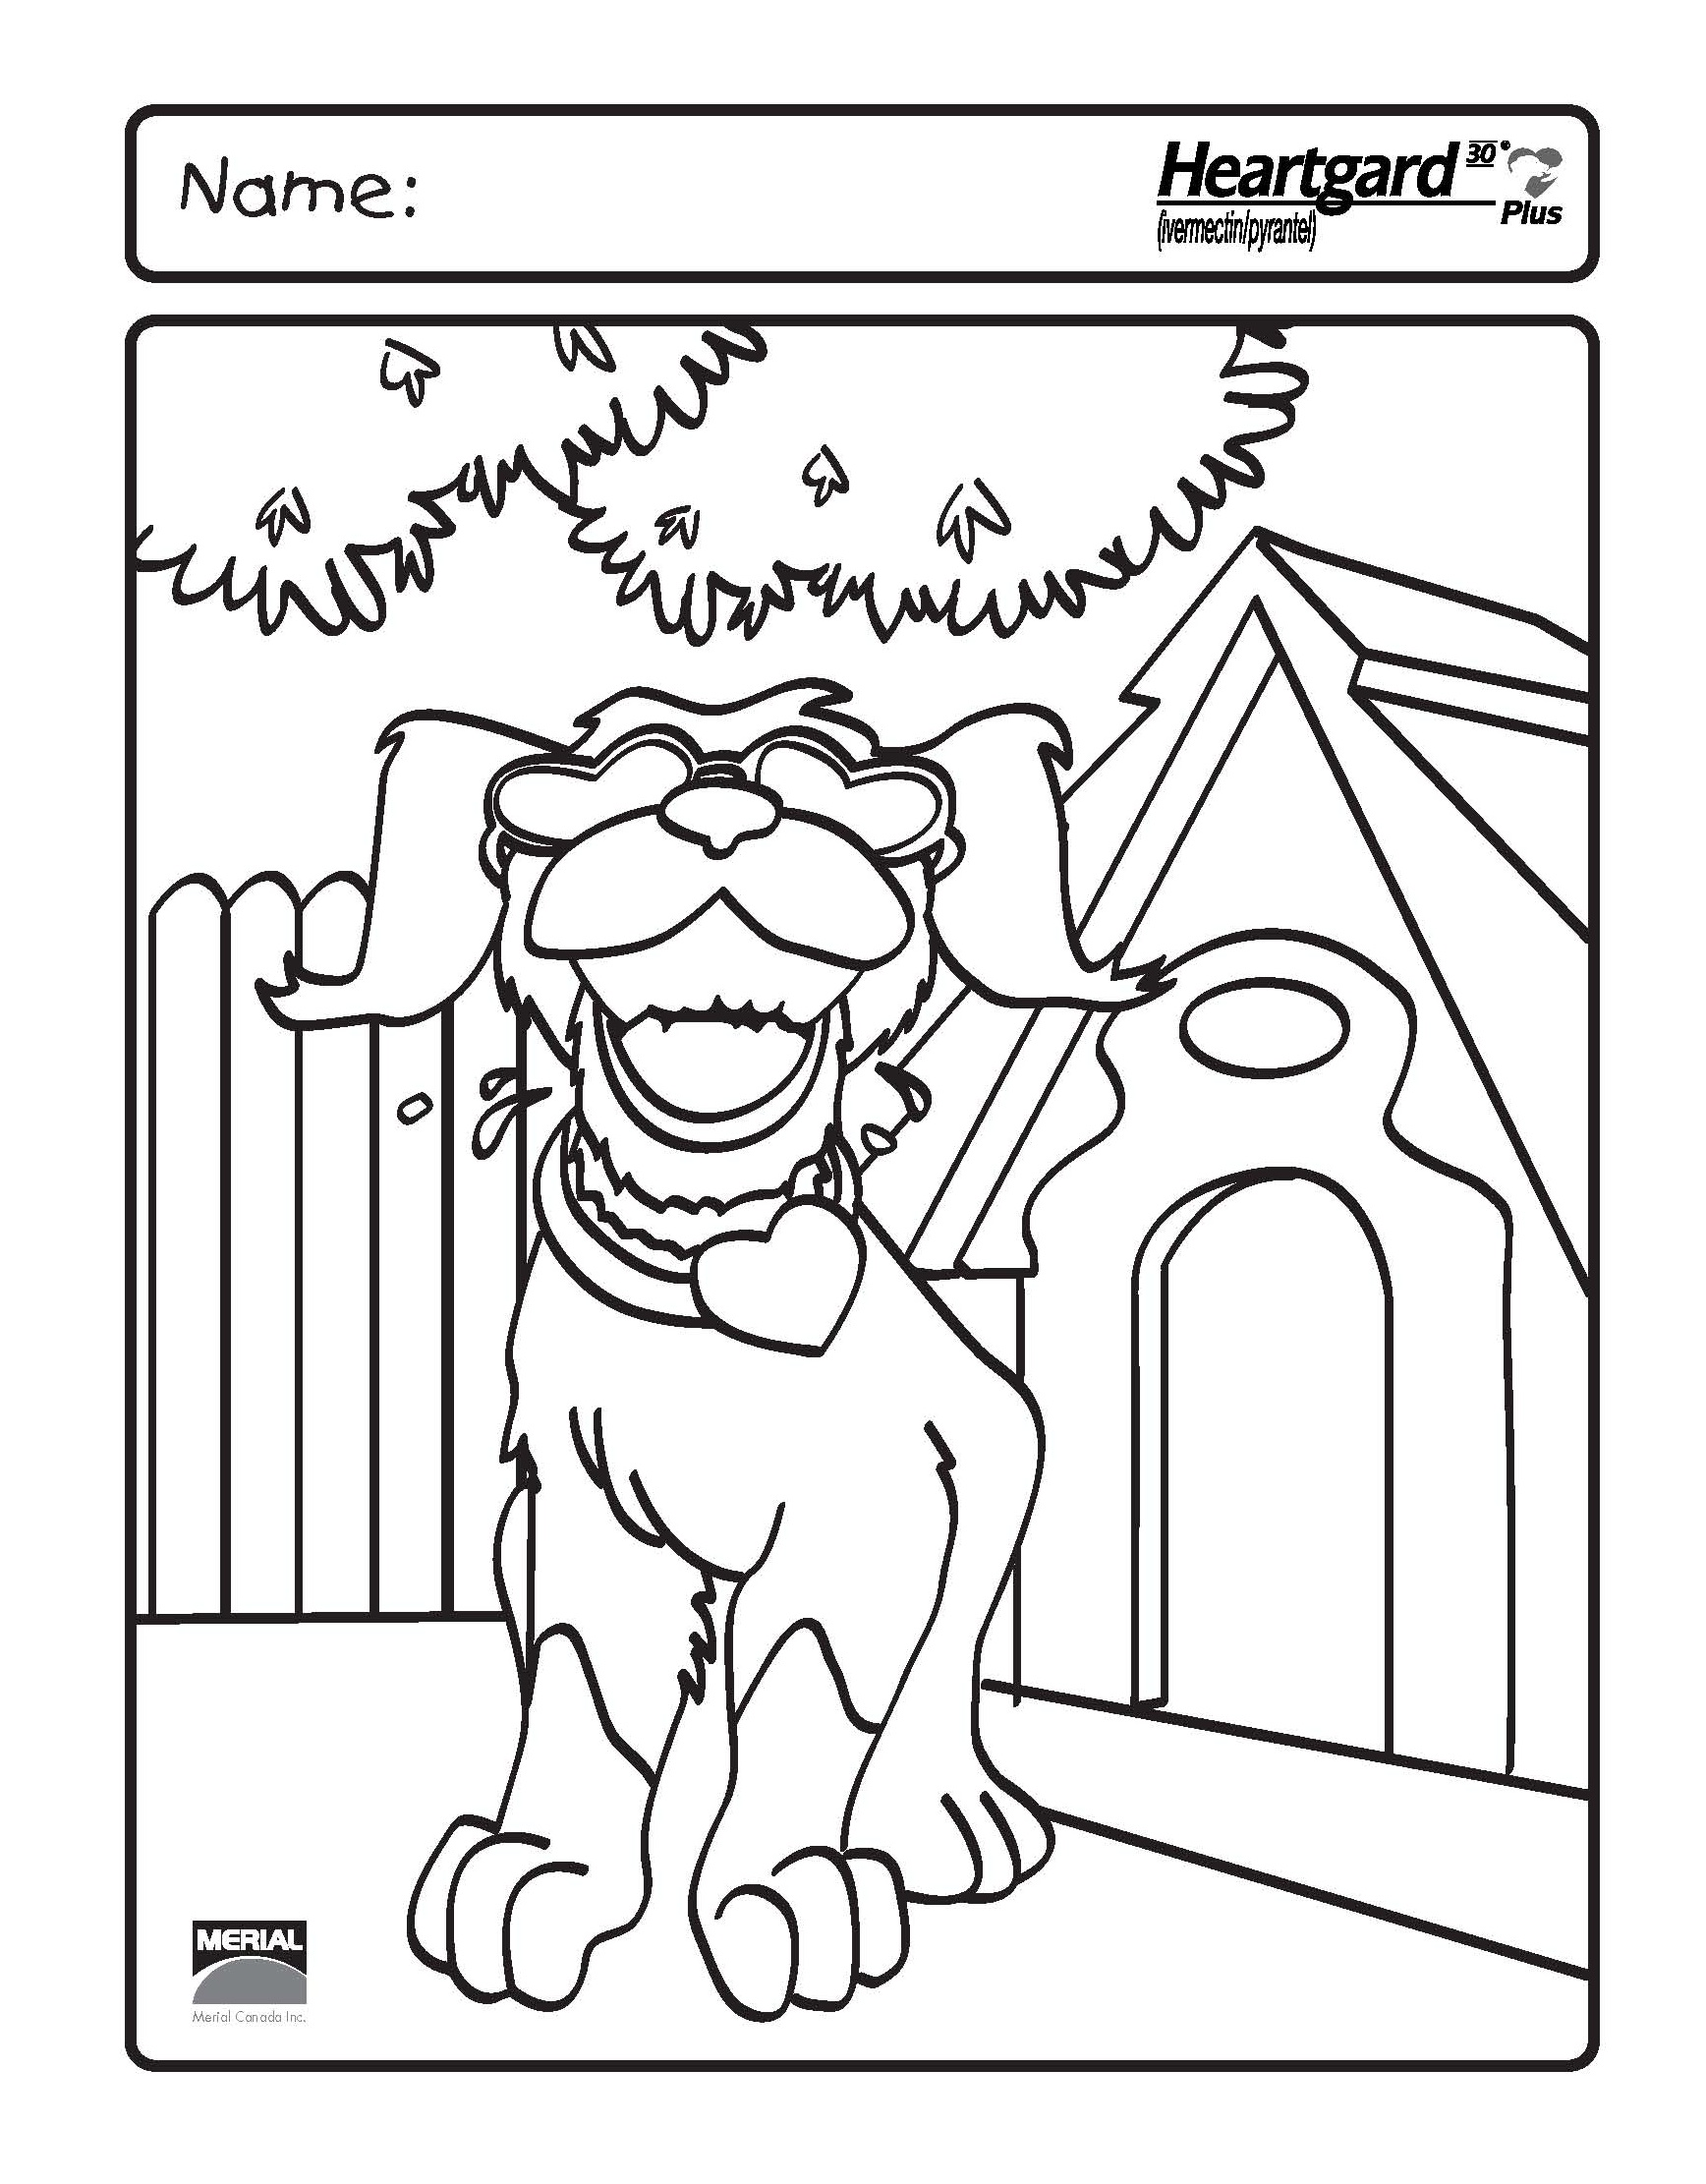 Animal Hospital Coloring Pages : Animal hospital colouring pages